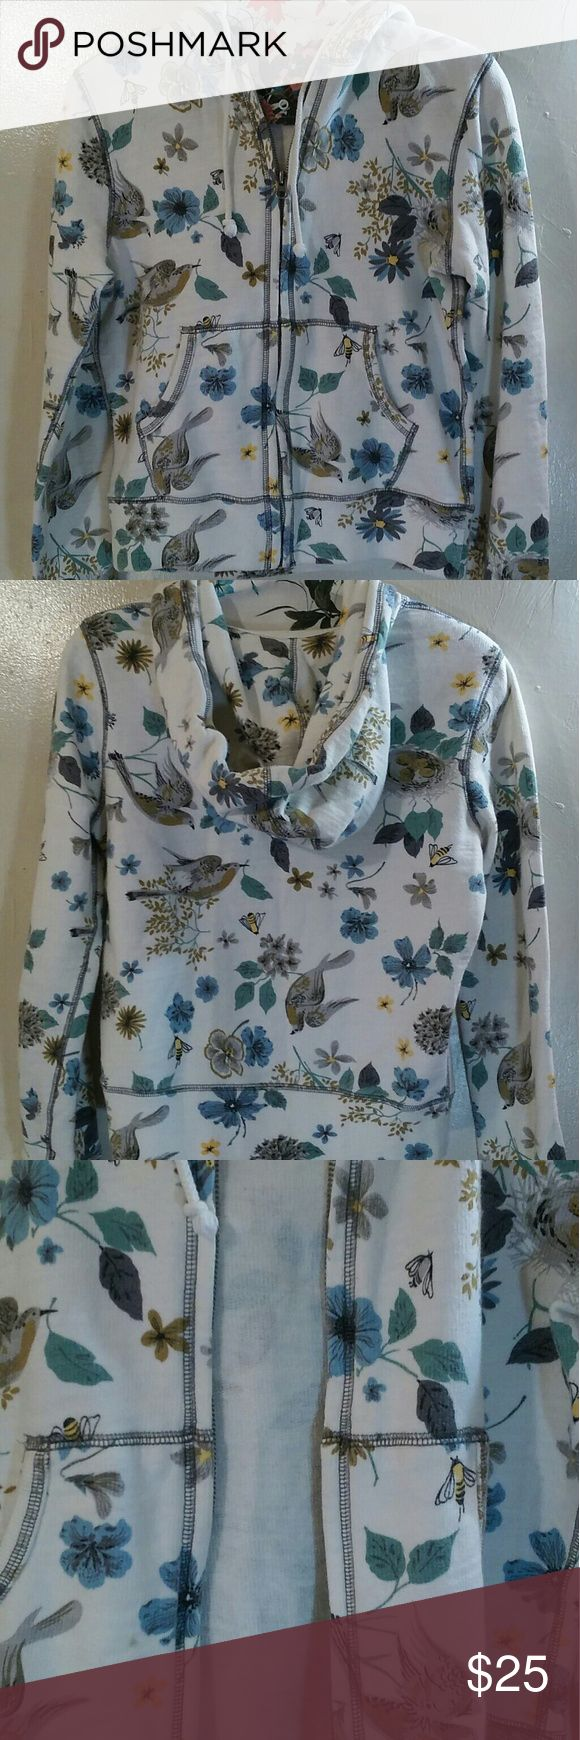 Lucky Brand Womens Small Hoodie Floral/Bird Print 100% Cotton hoodie white with floral/bird print is blue, yellow, green and brown.  Full working zipper, kangaroo pockets - thick tie that won't get lost in casing.  Measurements (taken laid flat):  Chest:  19 inches Length:  21 inches Lucky Brand Jackets & Coats